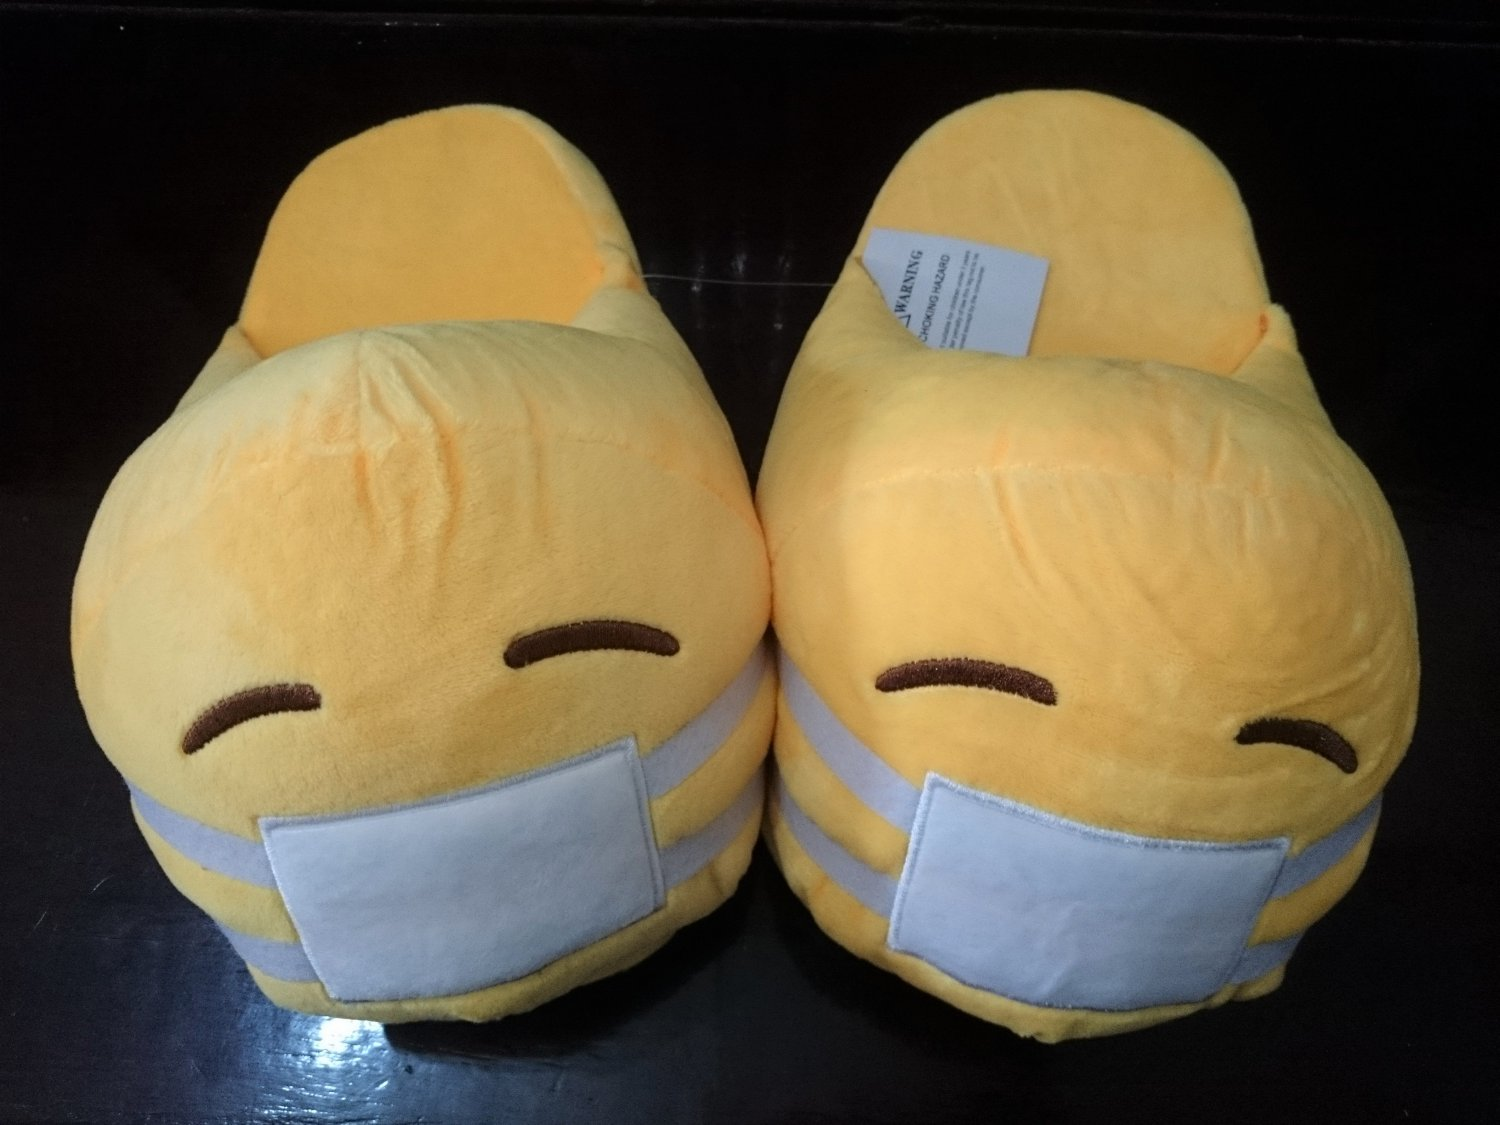 35-40 MEN & WOMEN Shoes Funny SICK SICK Emoji Slippers Home Accs Creative Gifts Costumes Accs